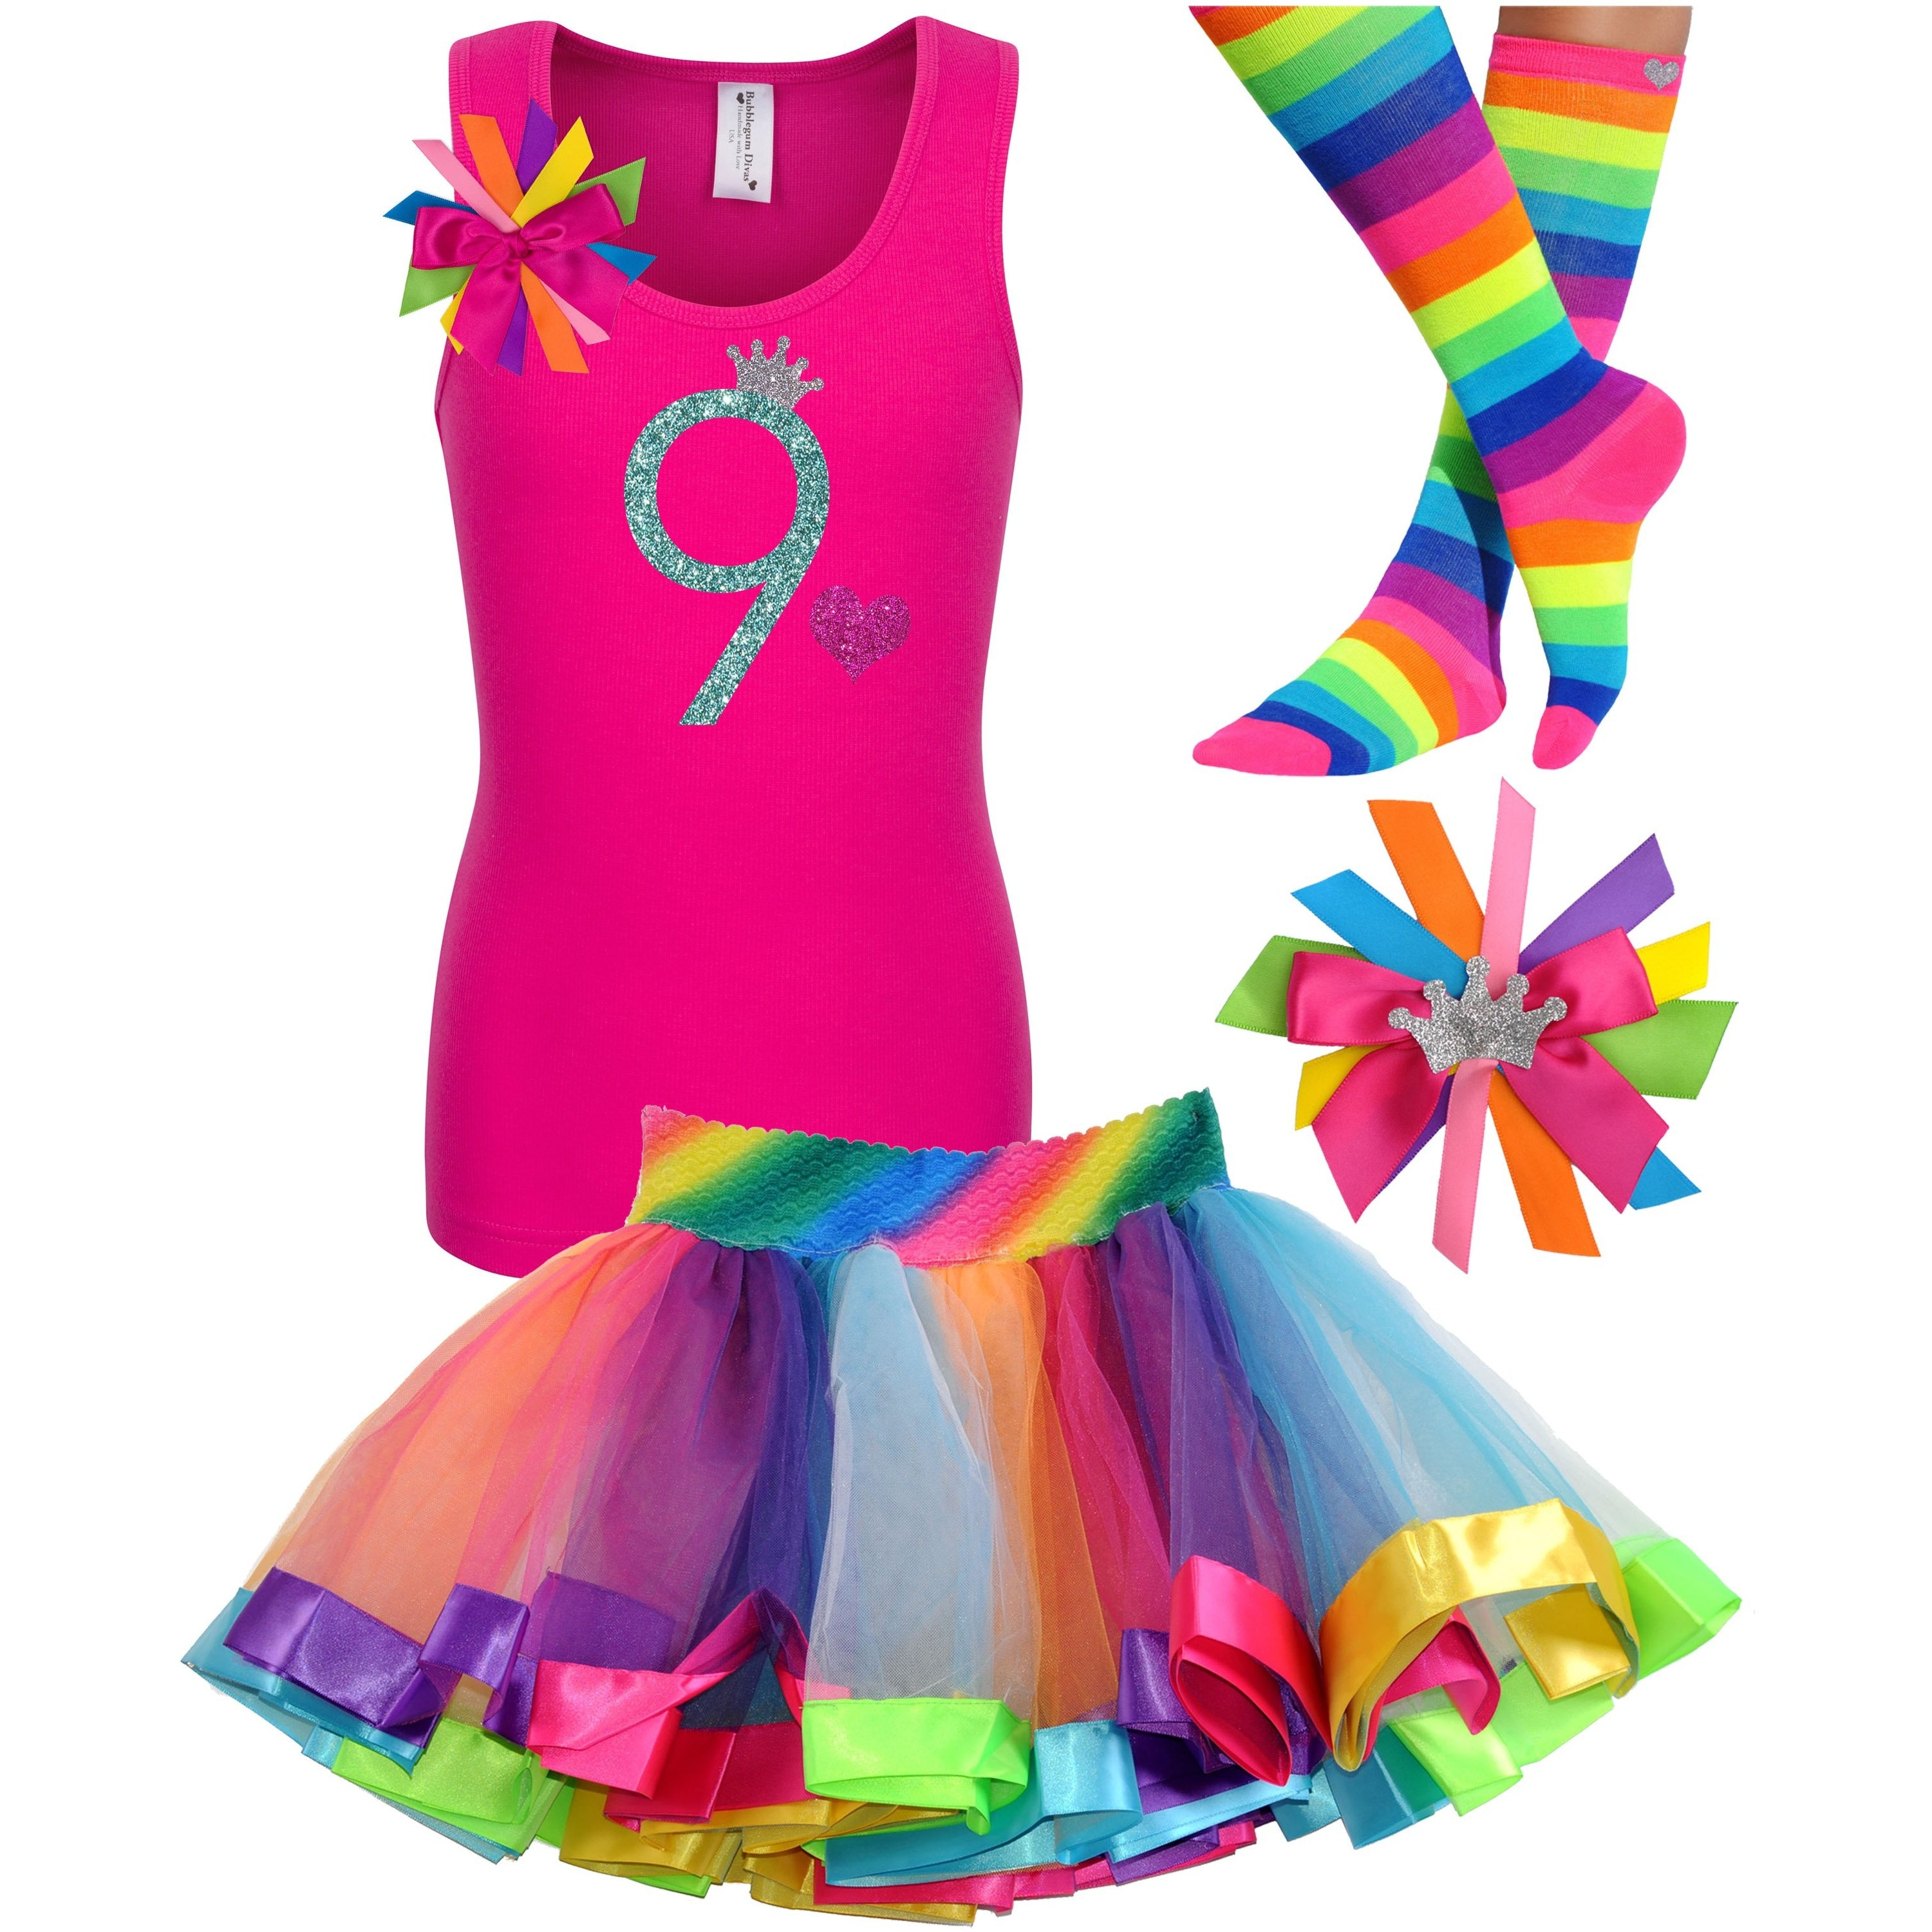 9th Birthday Shirt Jade Glitter Girls Rainbow Tutu Party Outfit 4PC Set